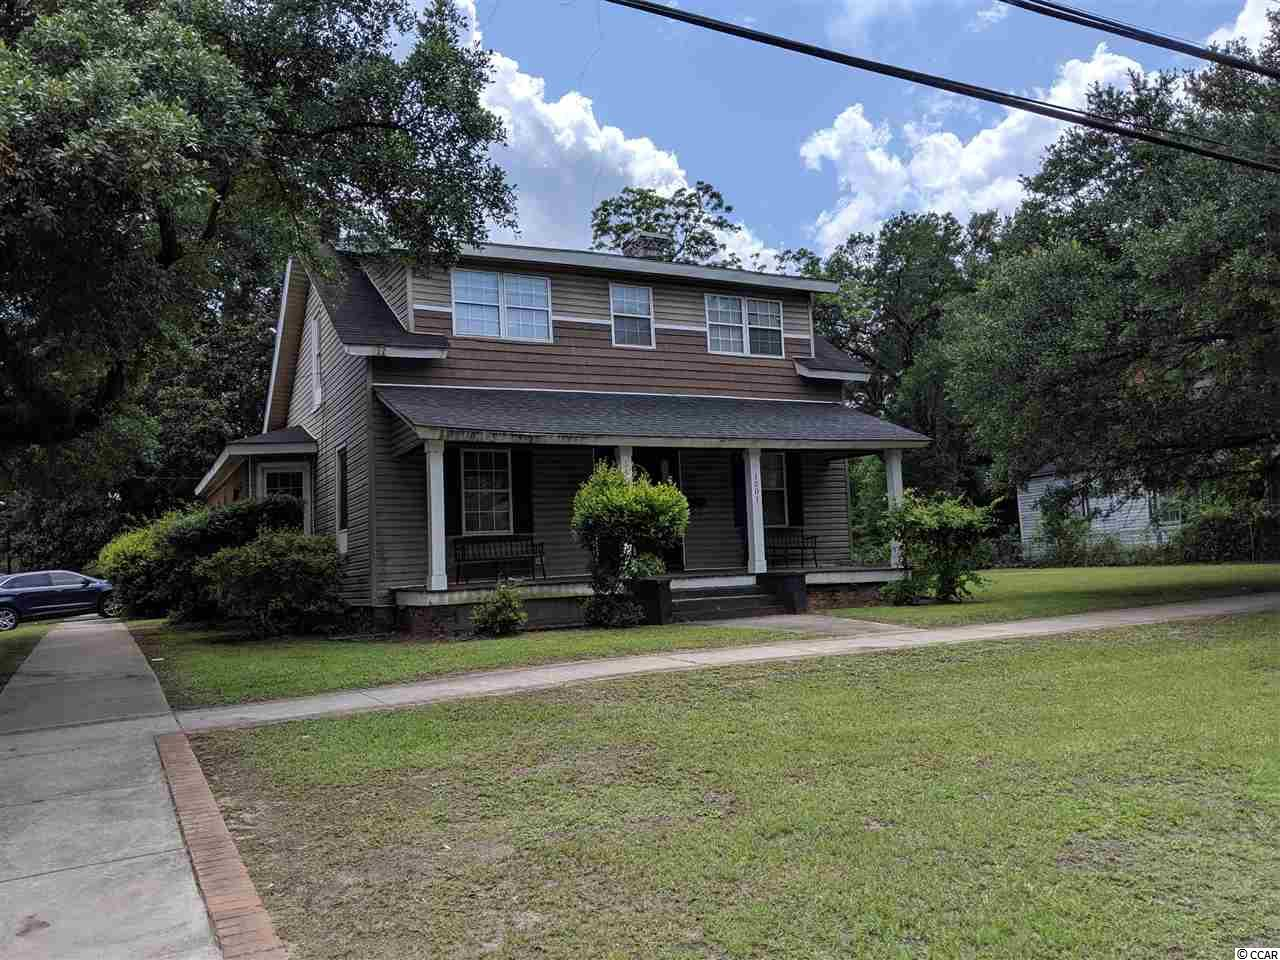 Five bedroom home in downtown Georgetown with lots of potential and charm. Only a couple blocks to shopping district. Large yard with storage shed. The streets are lined with beautiful live oaks and two pecan trees on the property. SO much potential, so little money.